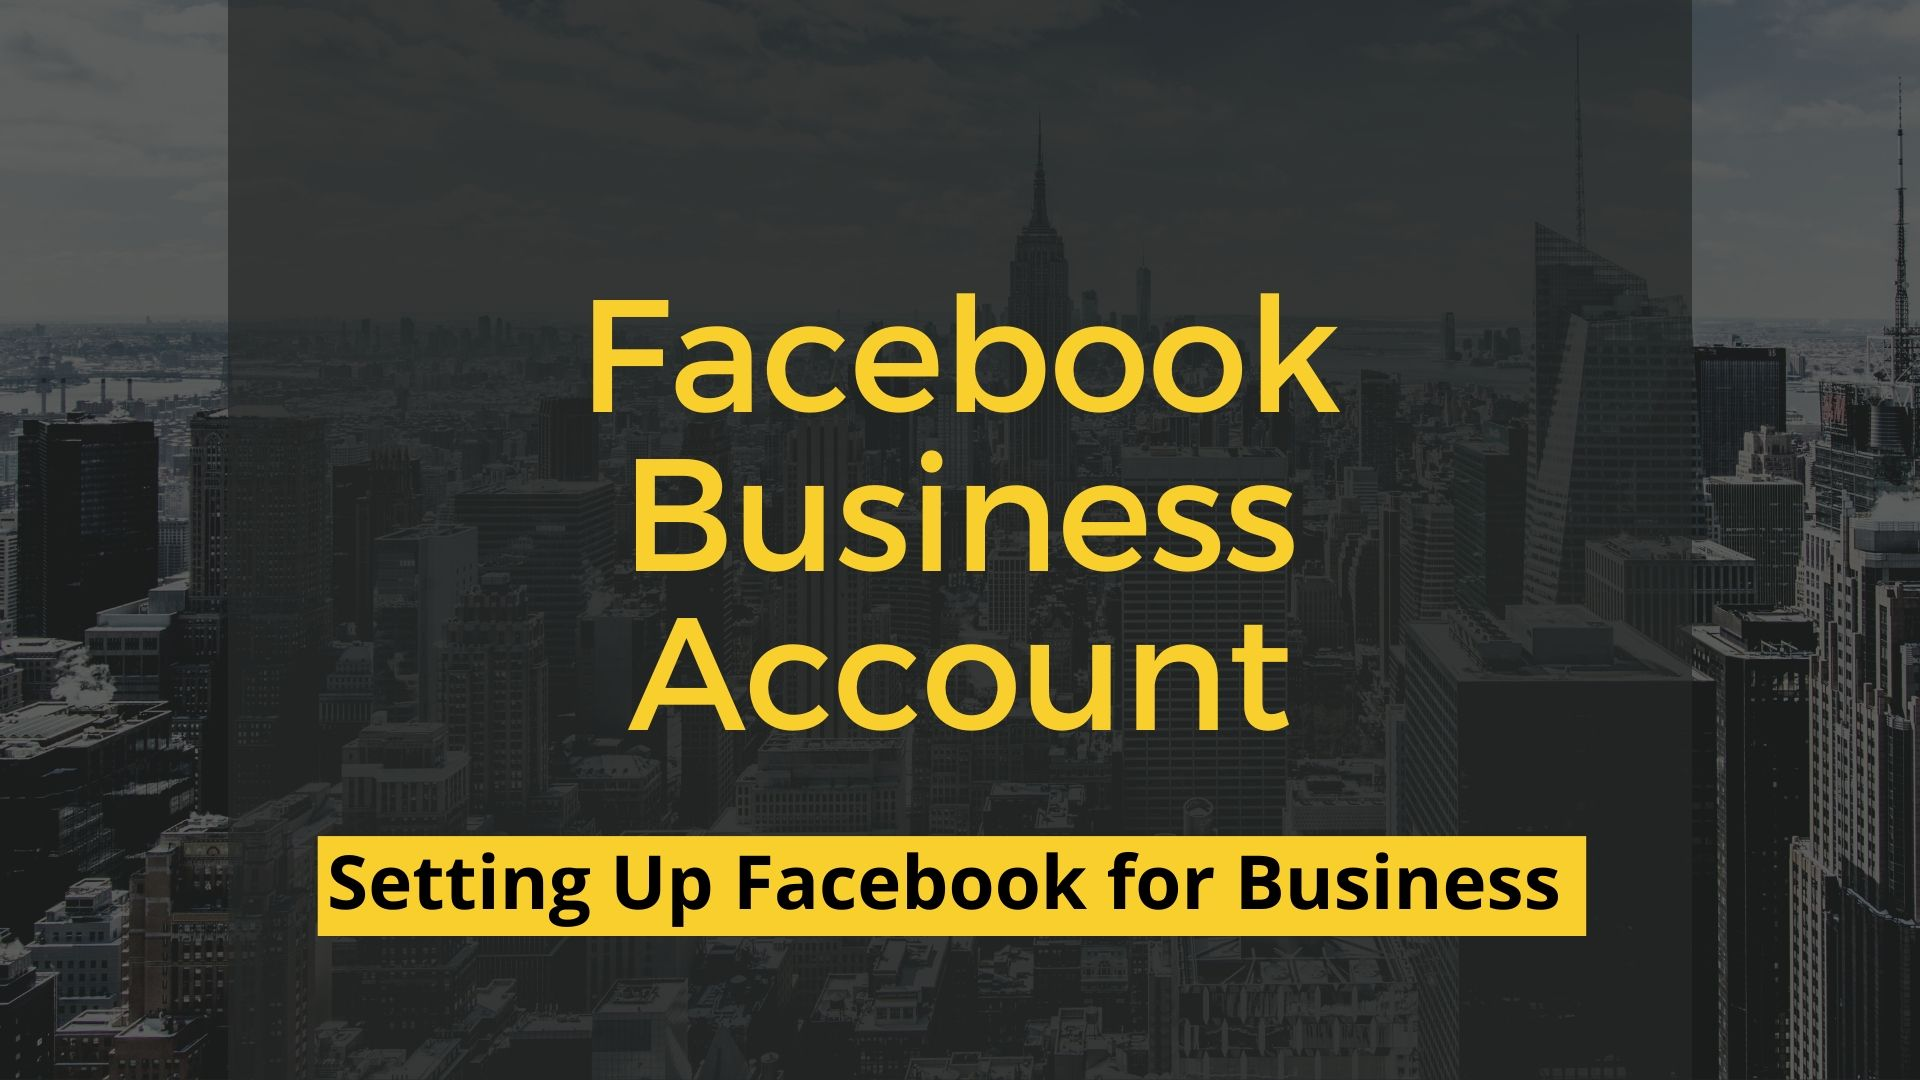 Facebook Business Account